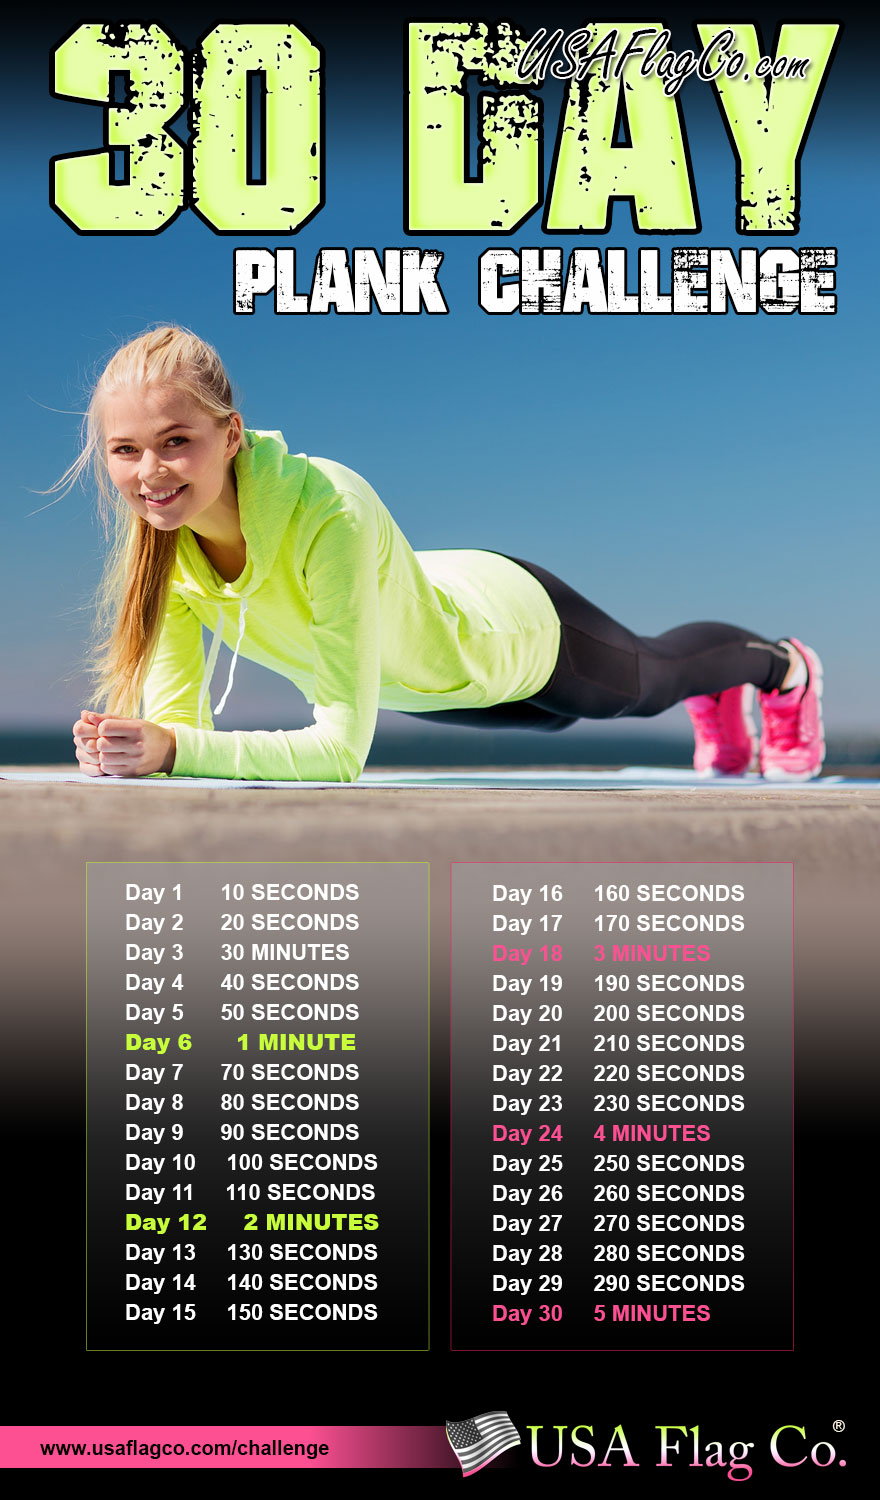 30 Day Plank Challenge by USA Flag Co.